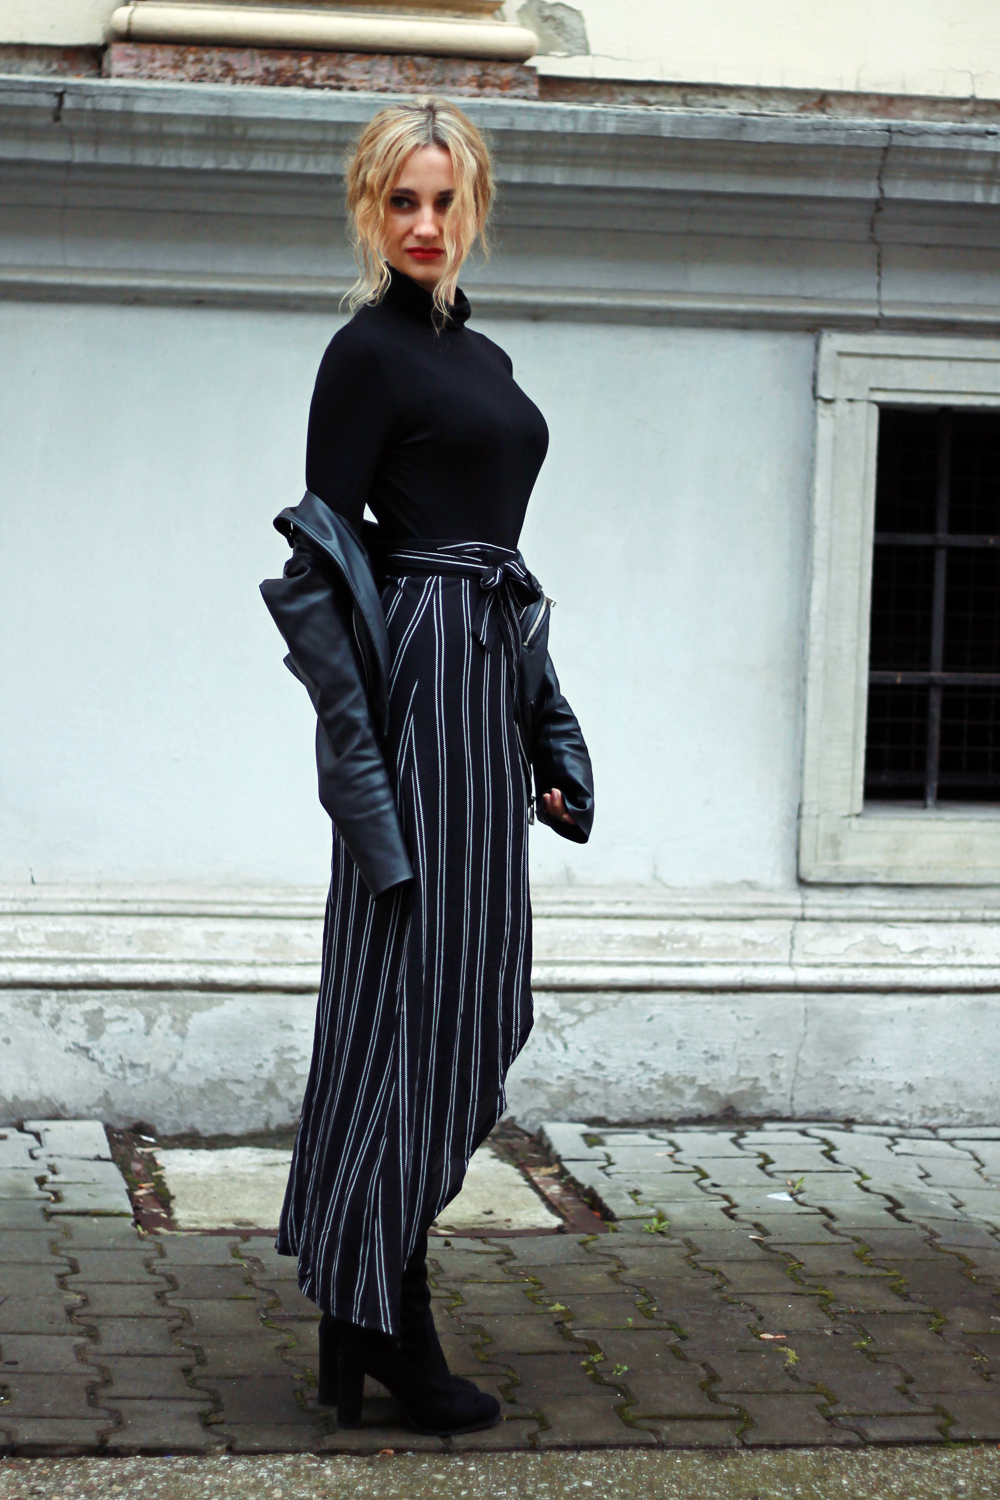 black-outfit-clothes-street-style-tumblr-girl-look-lookbook-fashion-ootd-what-to-wear-autumn